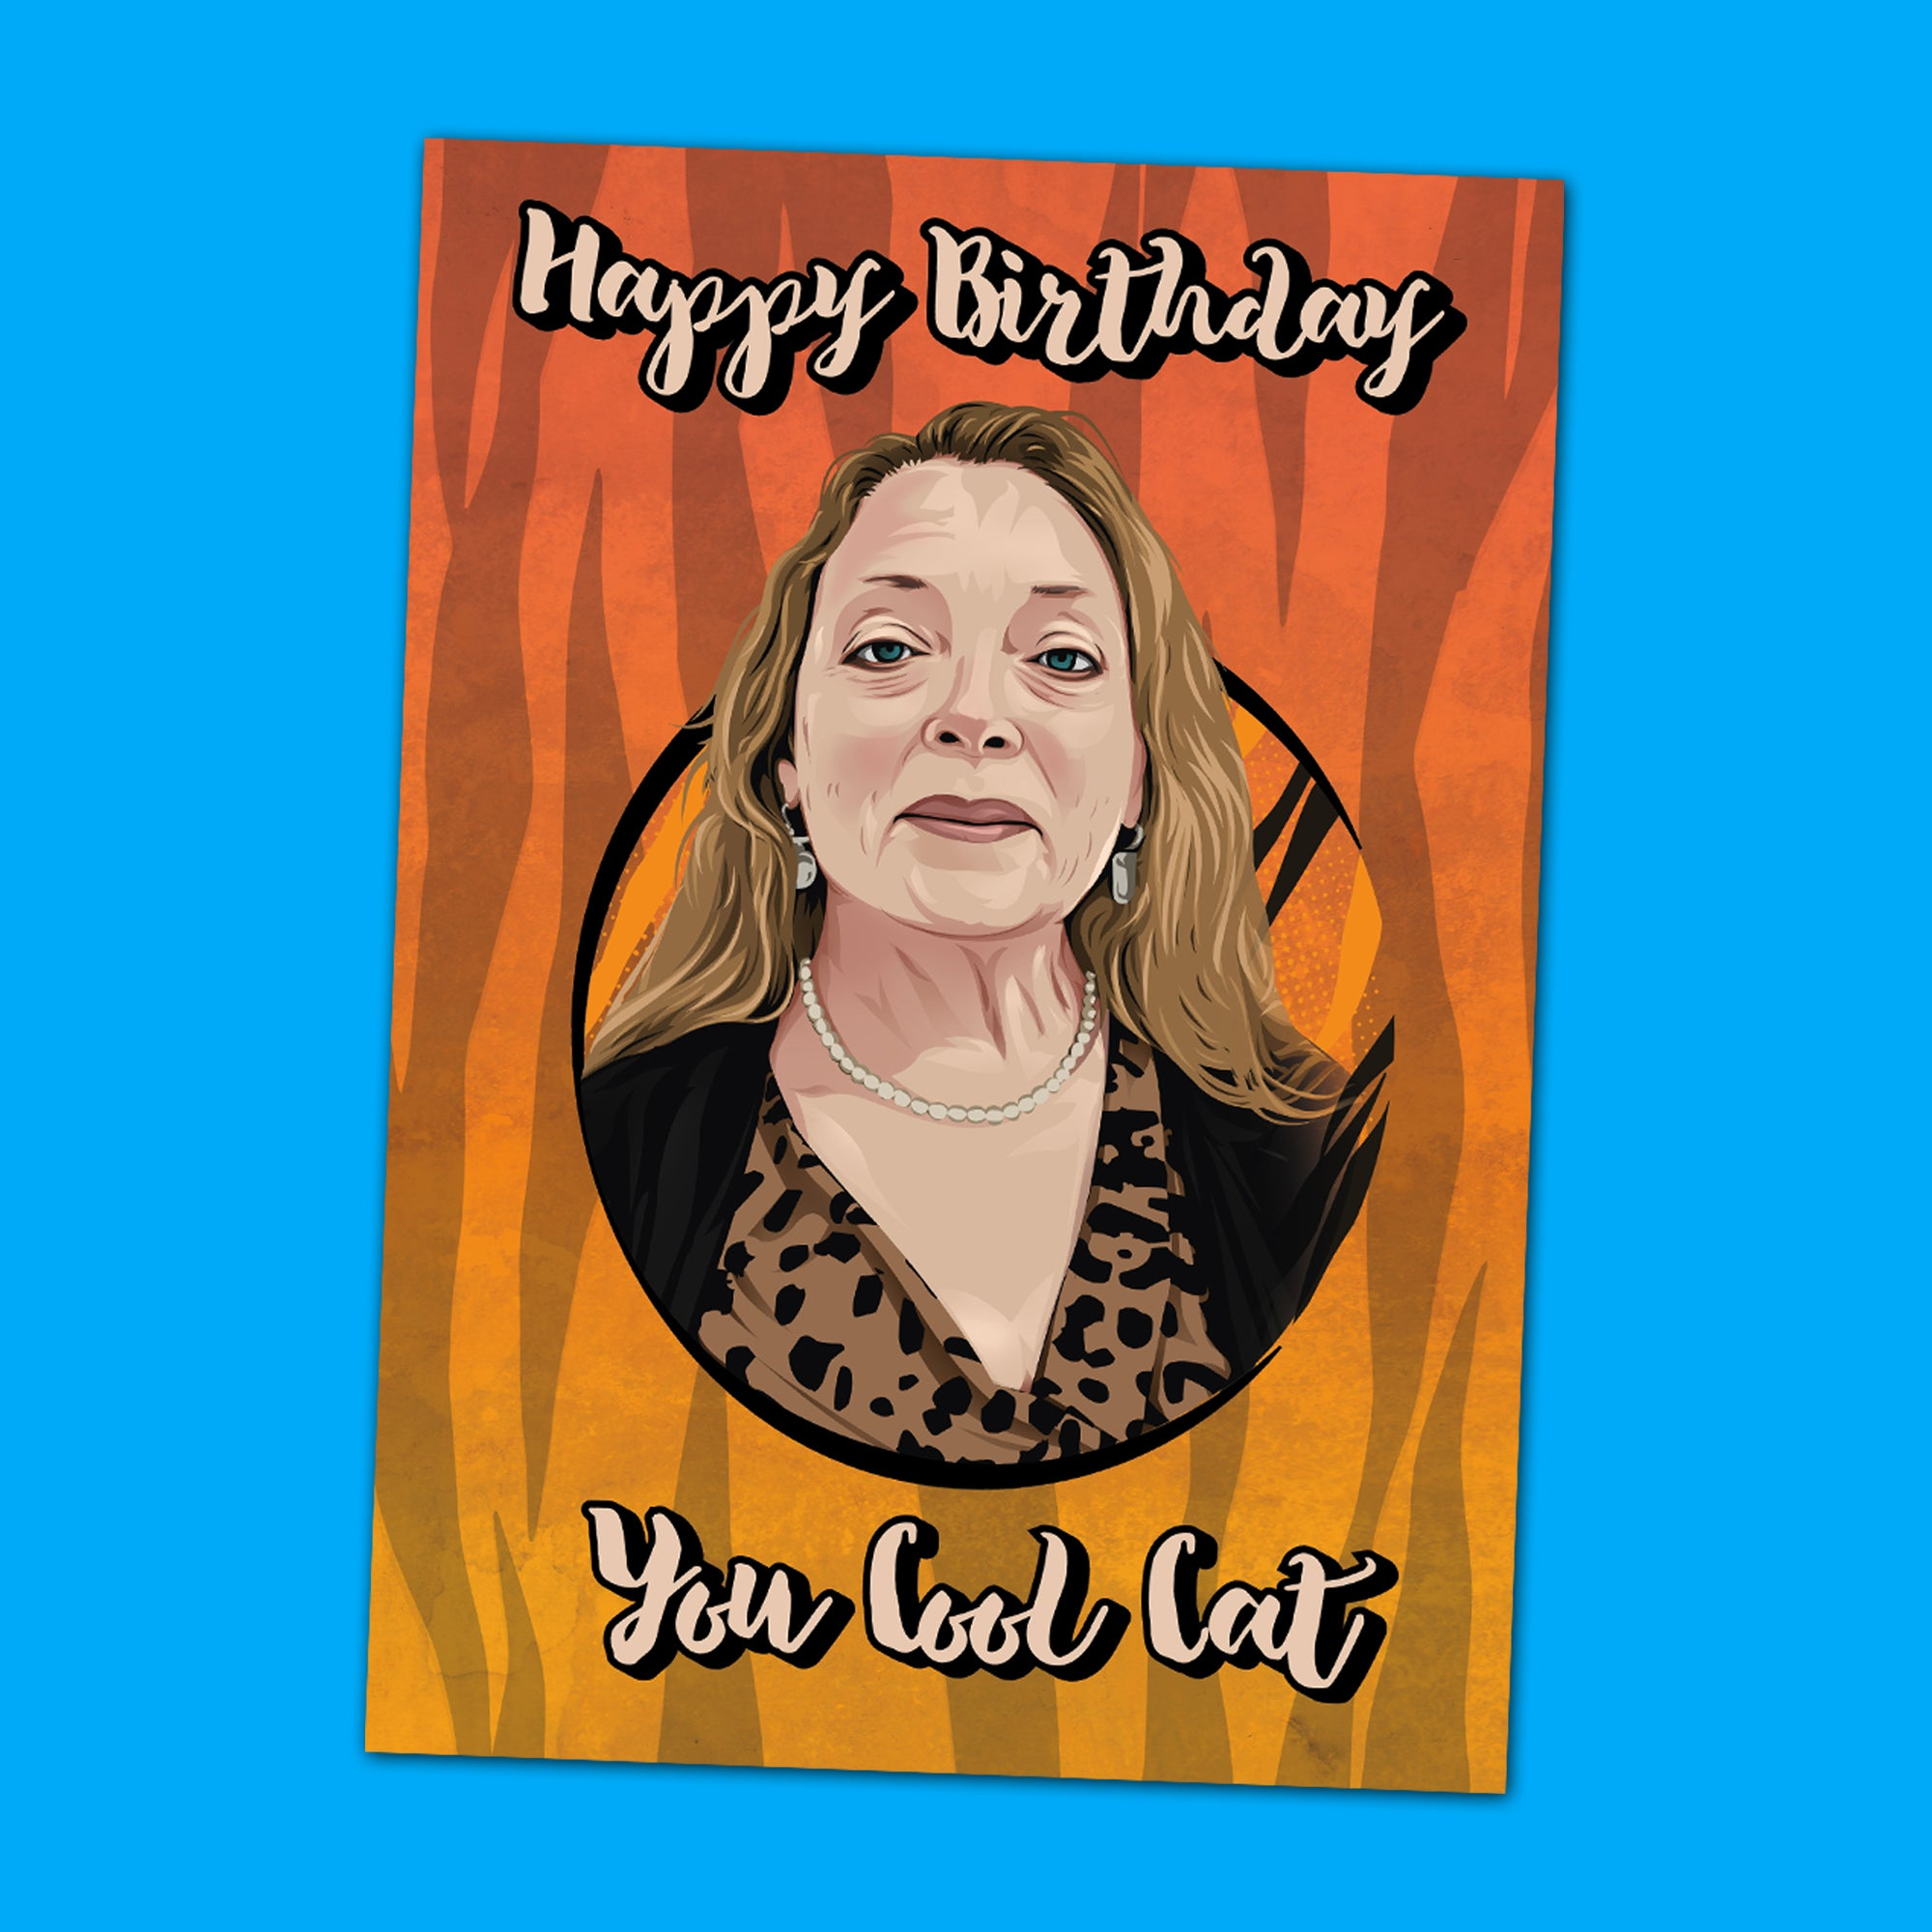 Carole Baskin Birthday Card